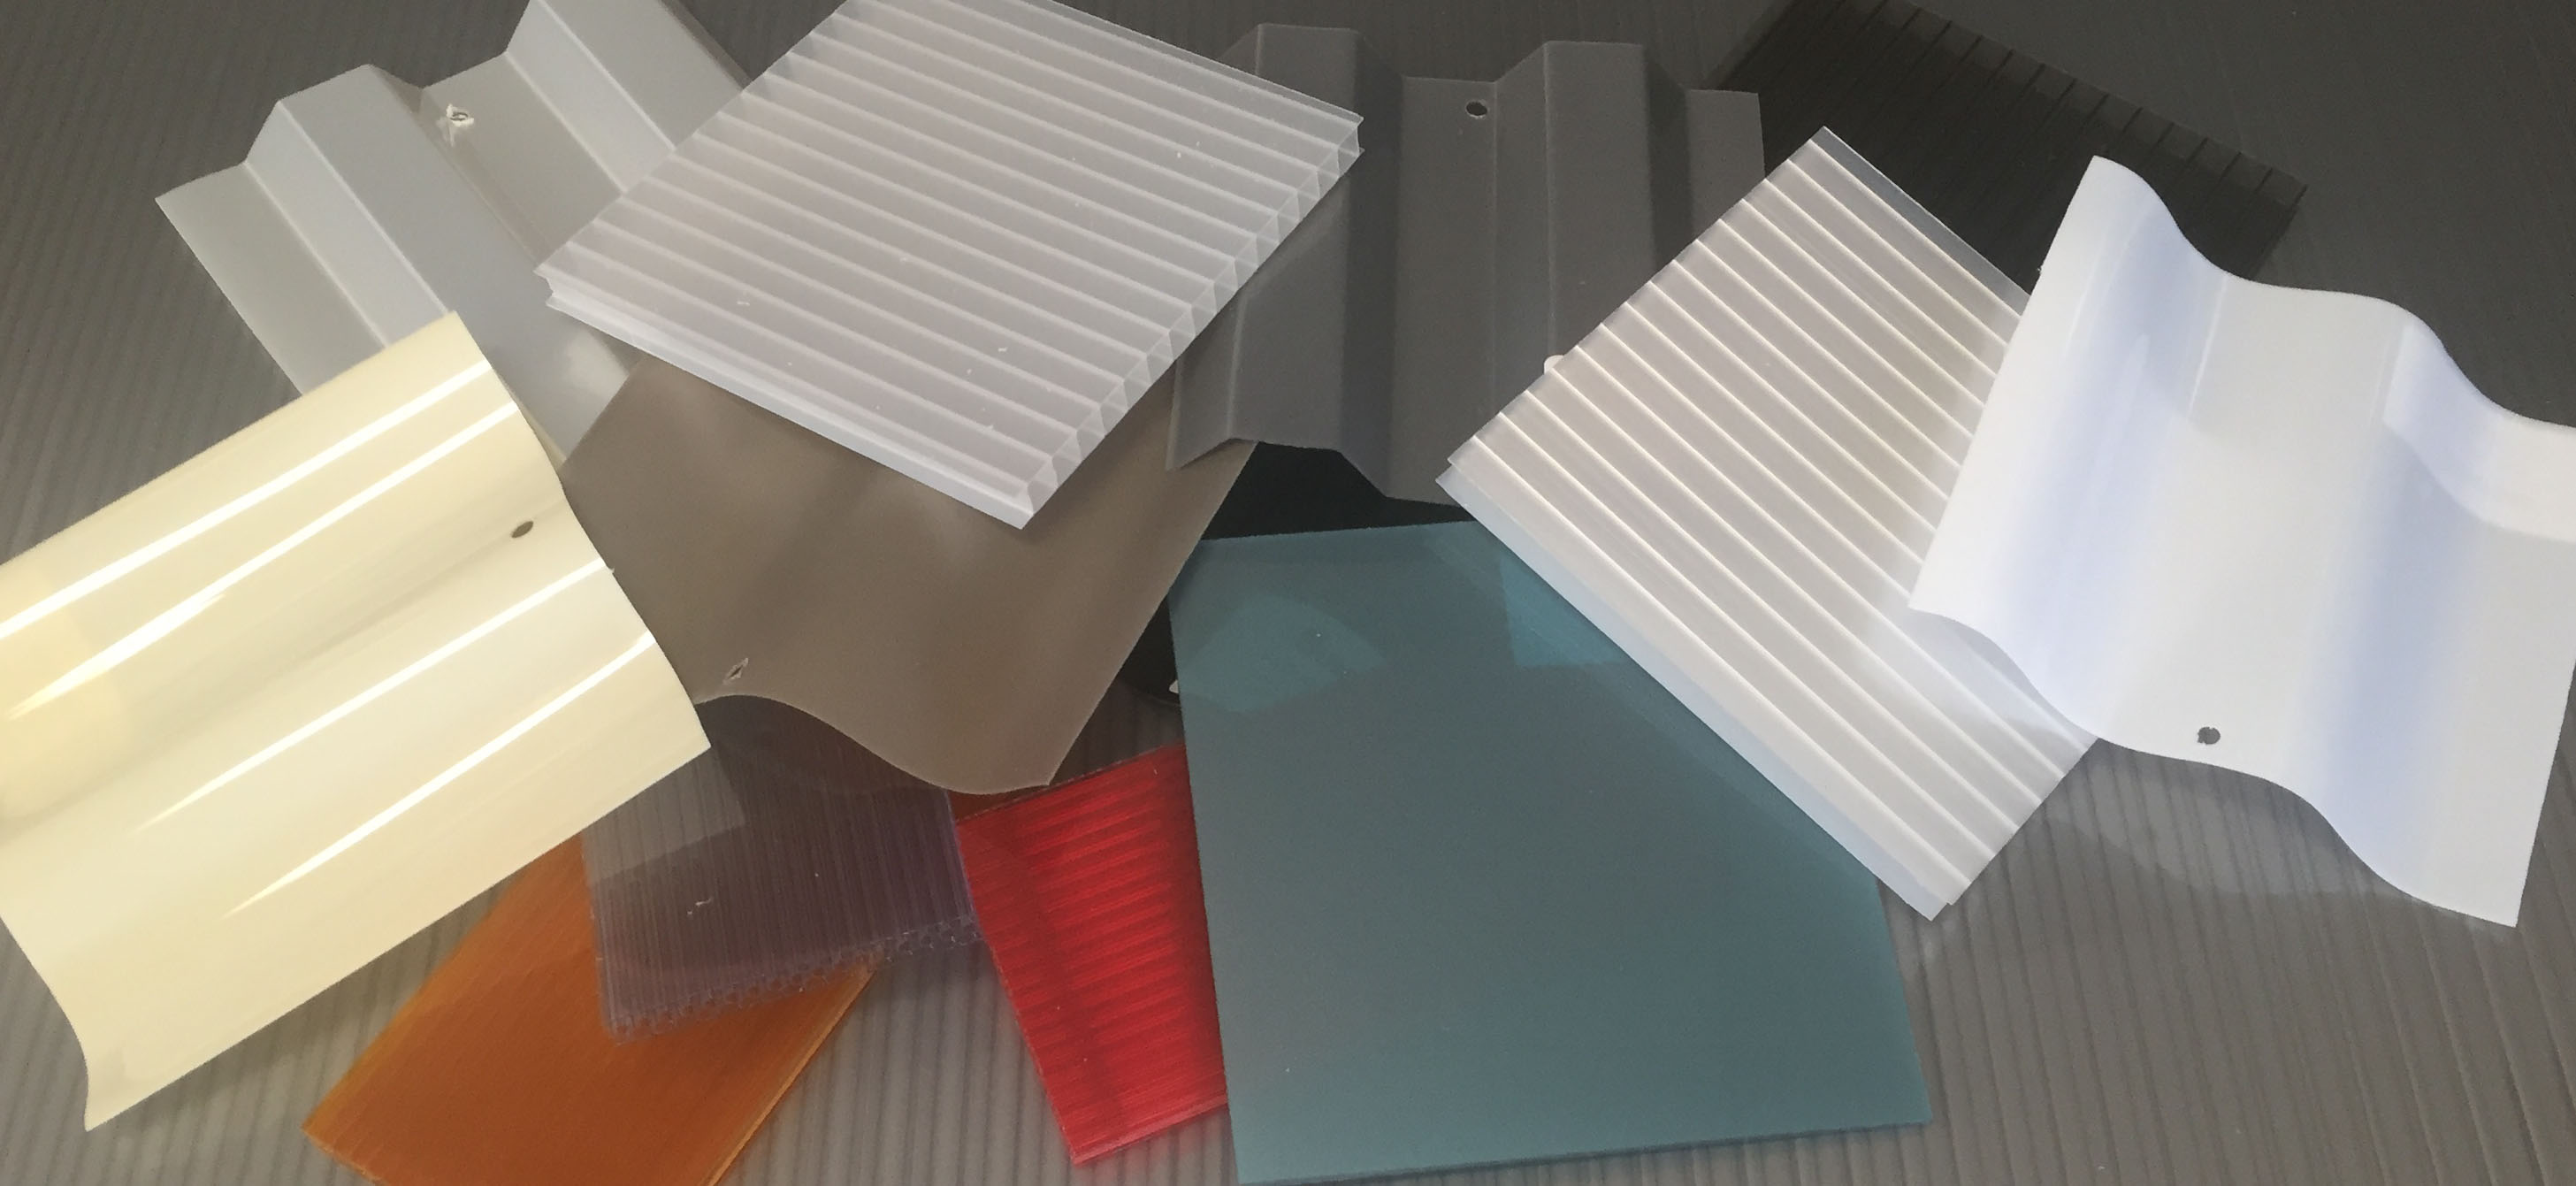 Polycarbonate Guides And Faqs Polycarbonate Roofing